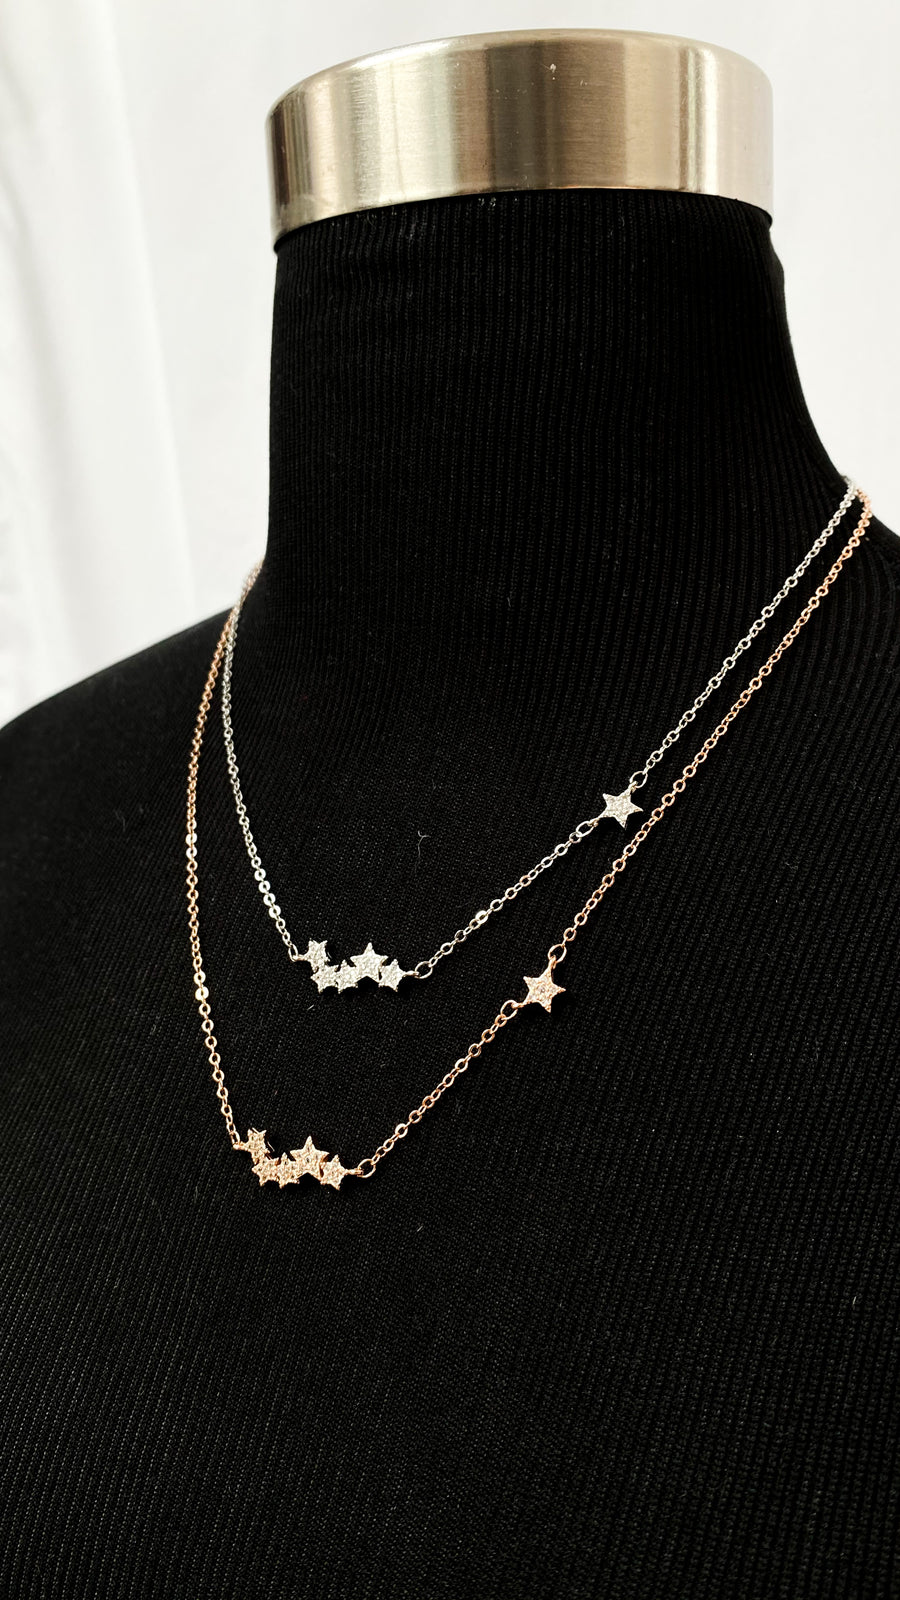 (2 metals) Star Burst Sterling Silver Necklace